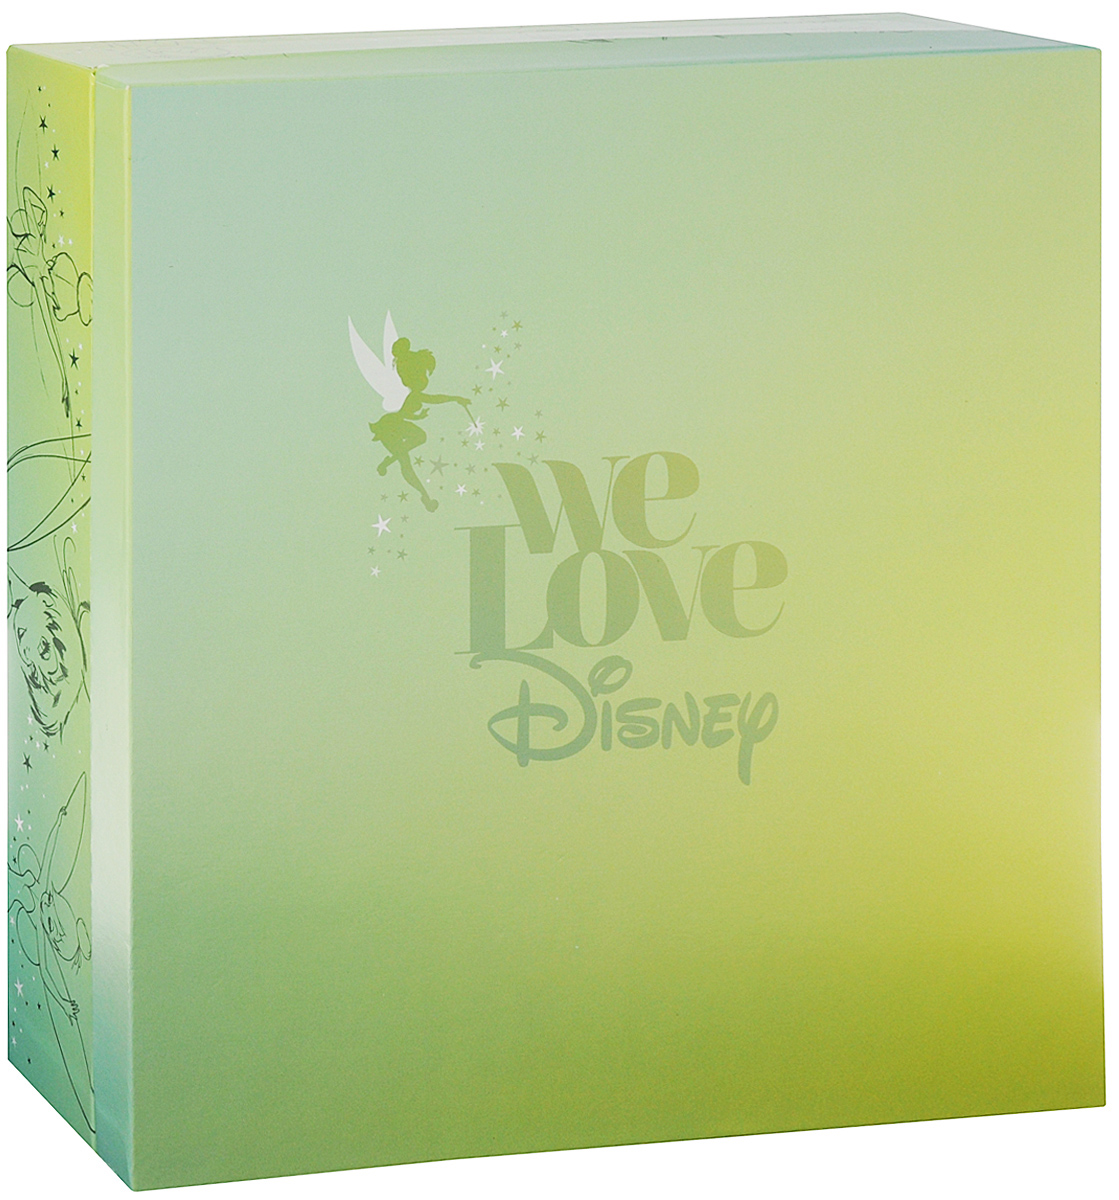 We Love Disney. Limited Edition (2 CD + DVD + 4 LP) reakosound 6201a 6 2 inch 6201a audio dvd sb sd bluetooth 2 din car cd player 1 3 inch color cmos camera